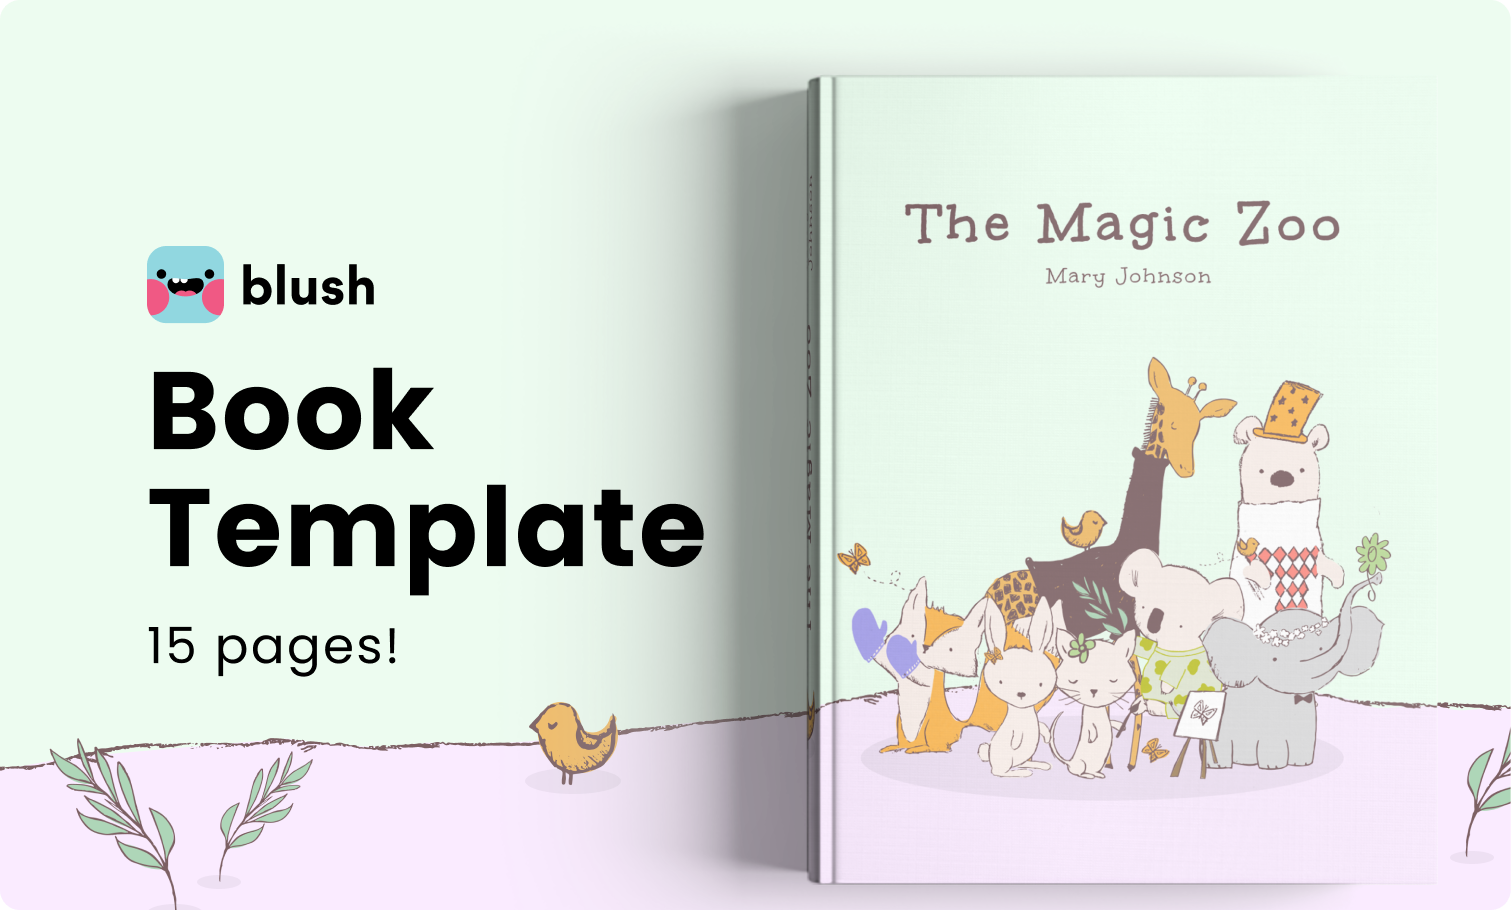 Cover image of the book template from Blush featuring illustrations